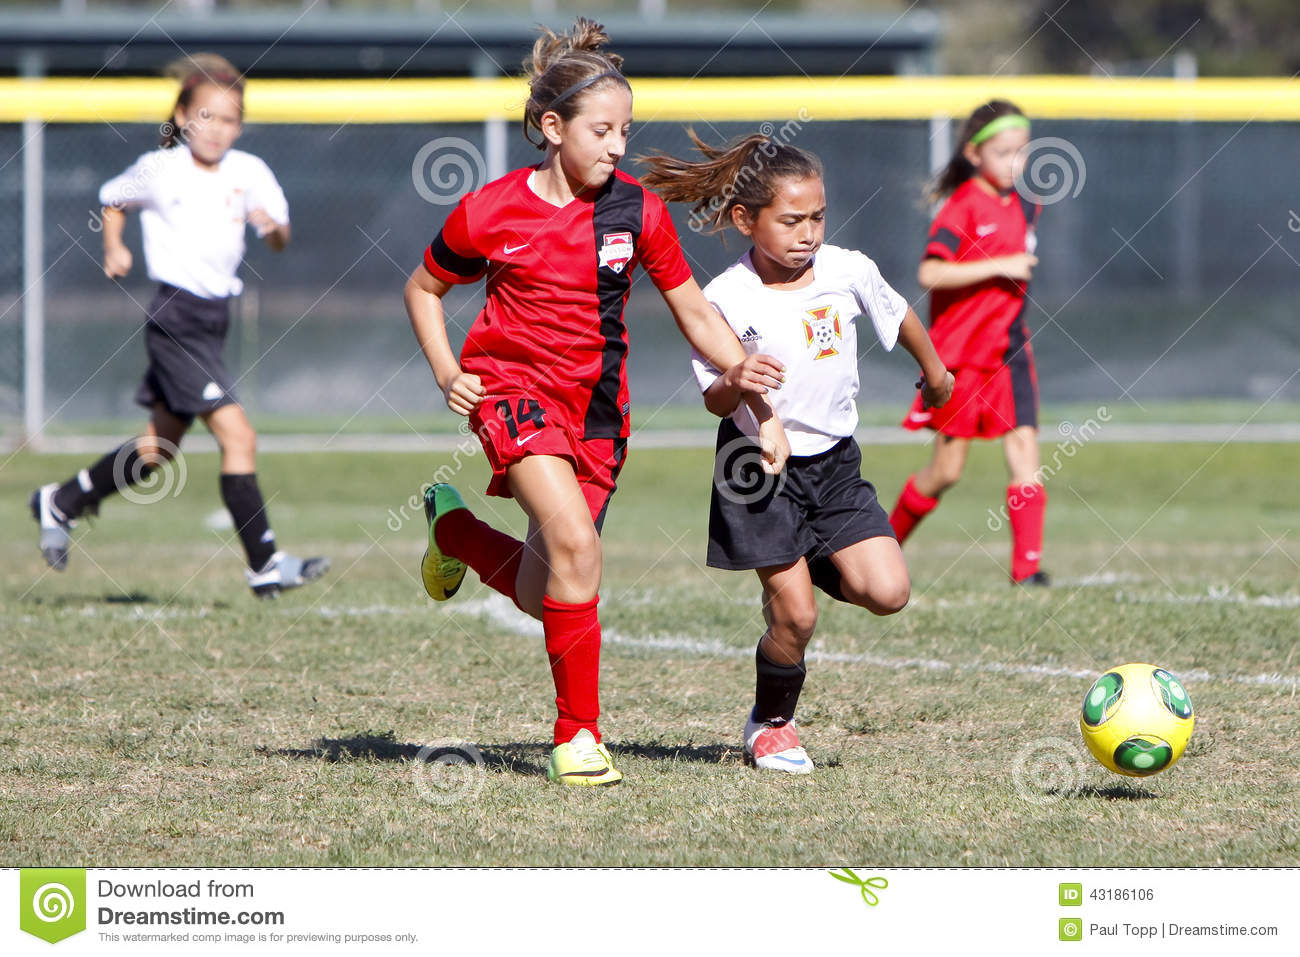 Girls Youth Soccer Football Players Running for the Ball